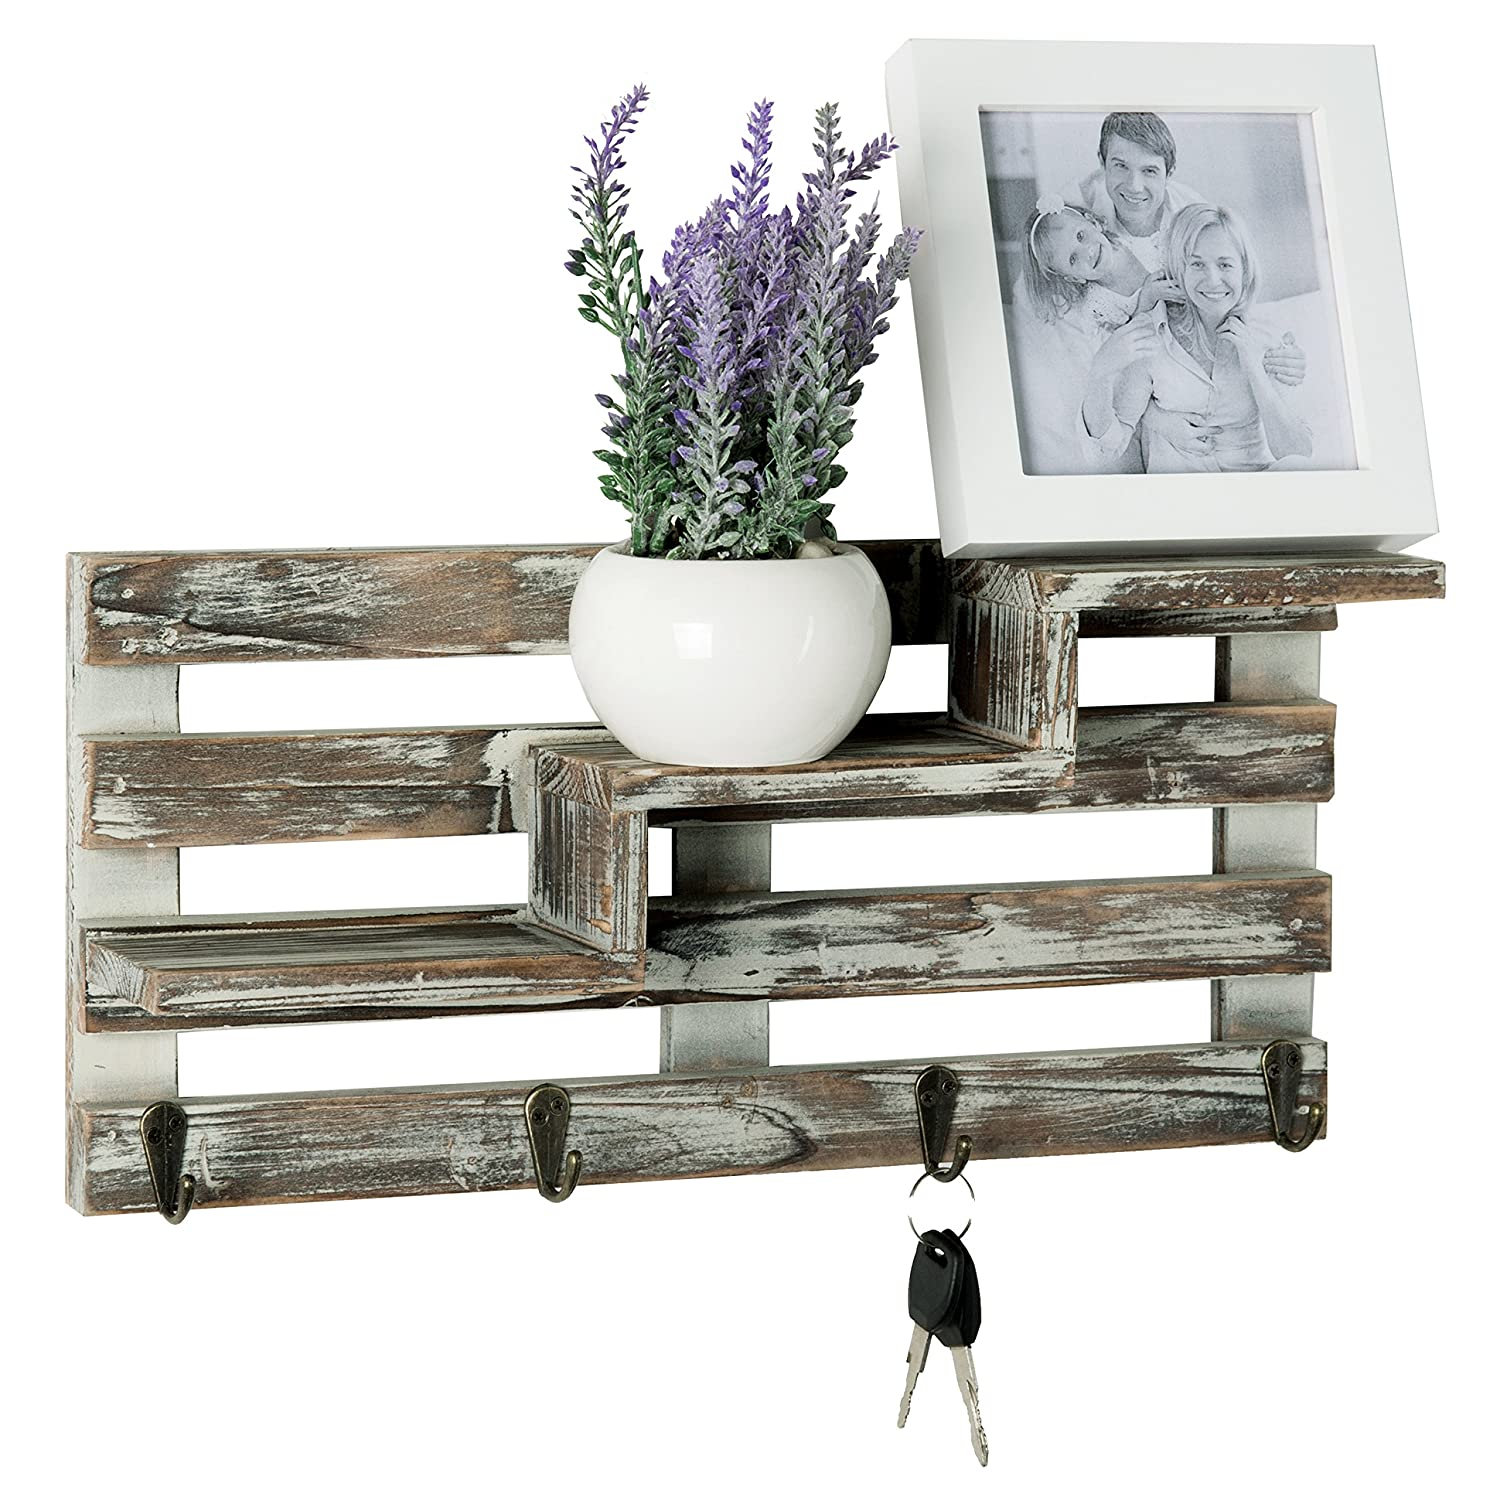 Wall Mounted Shelf Display Shelves Rustic Wood Organizer